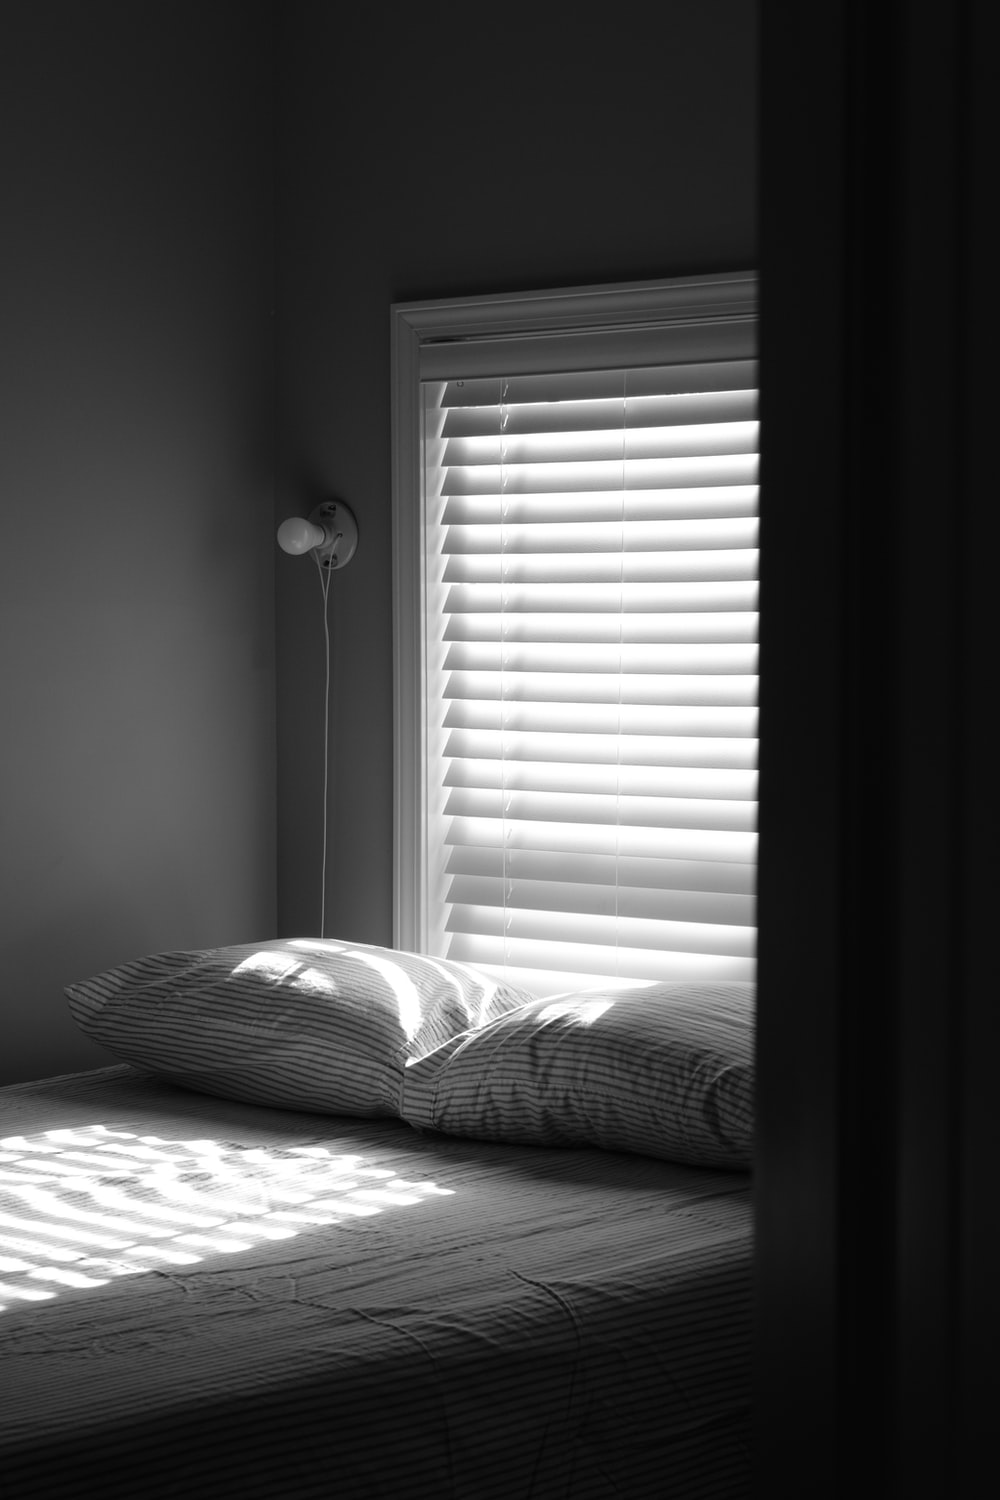 grayscale photo of bed with pillows